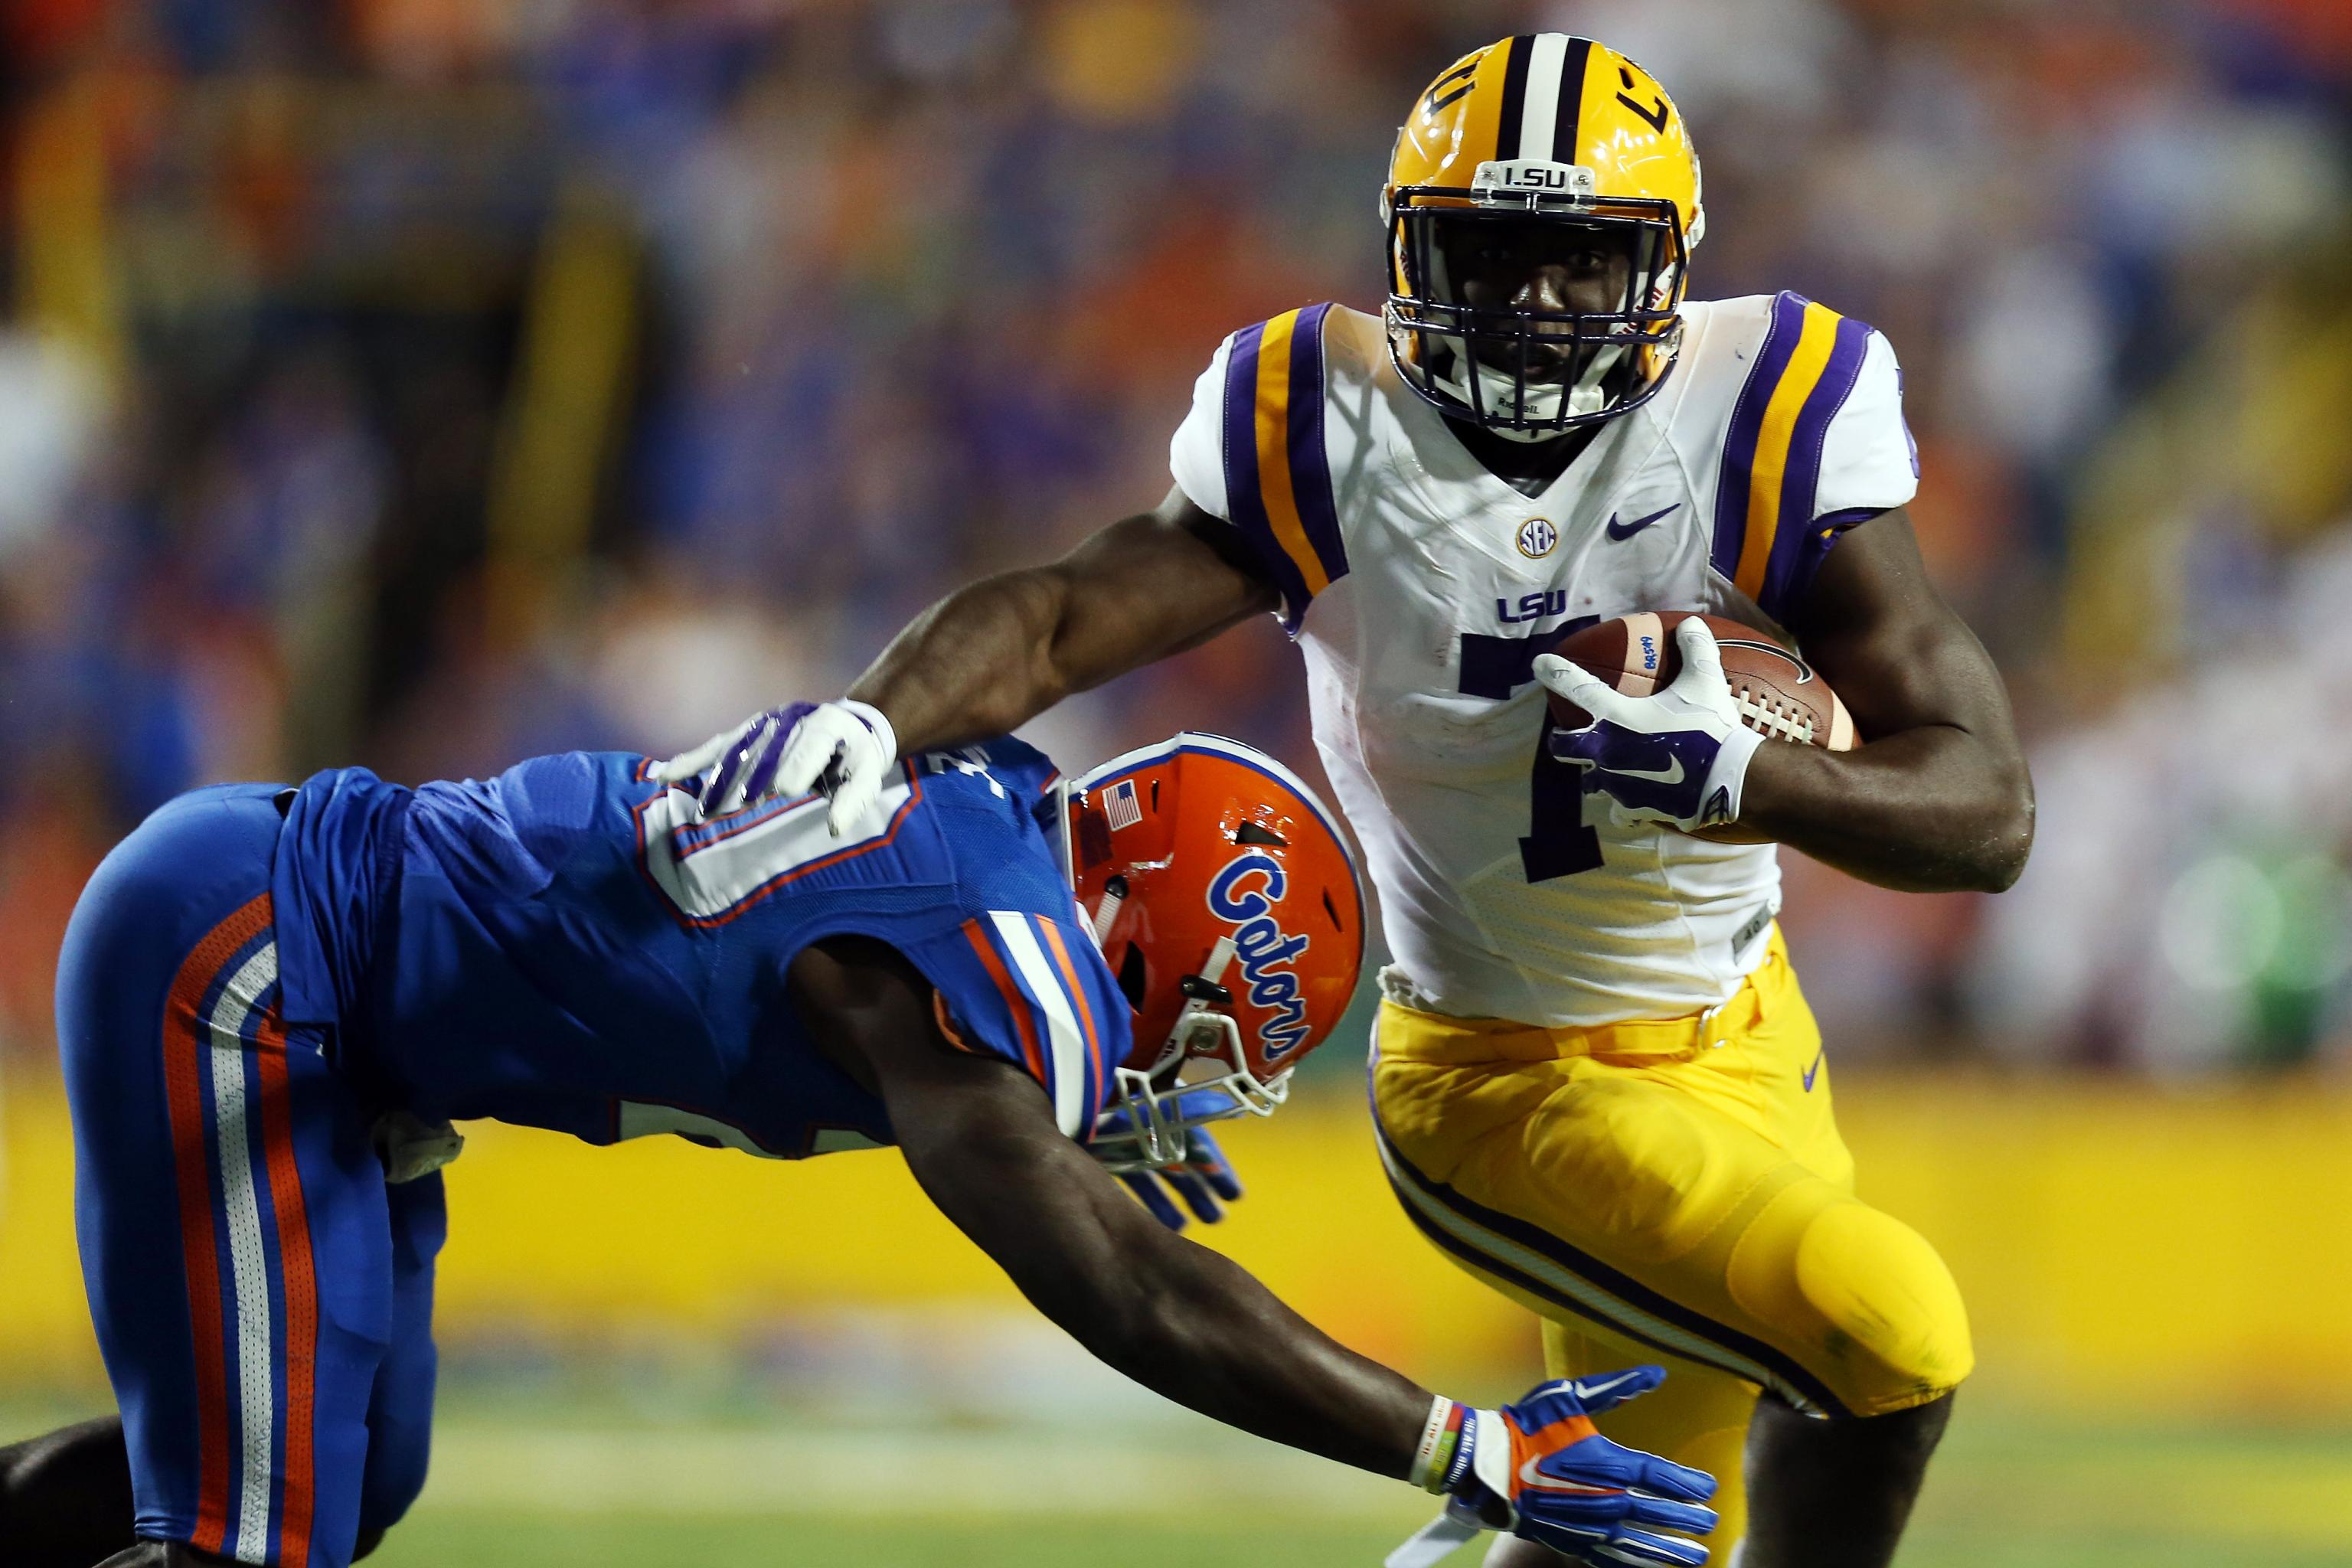 lsu vs florida